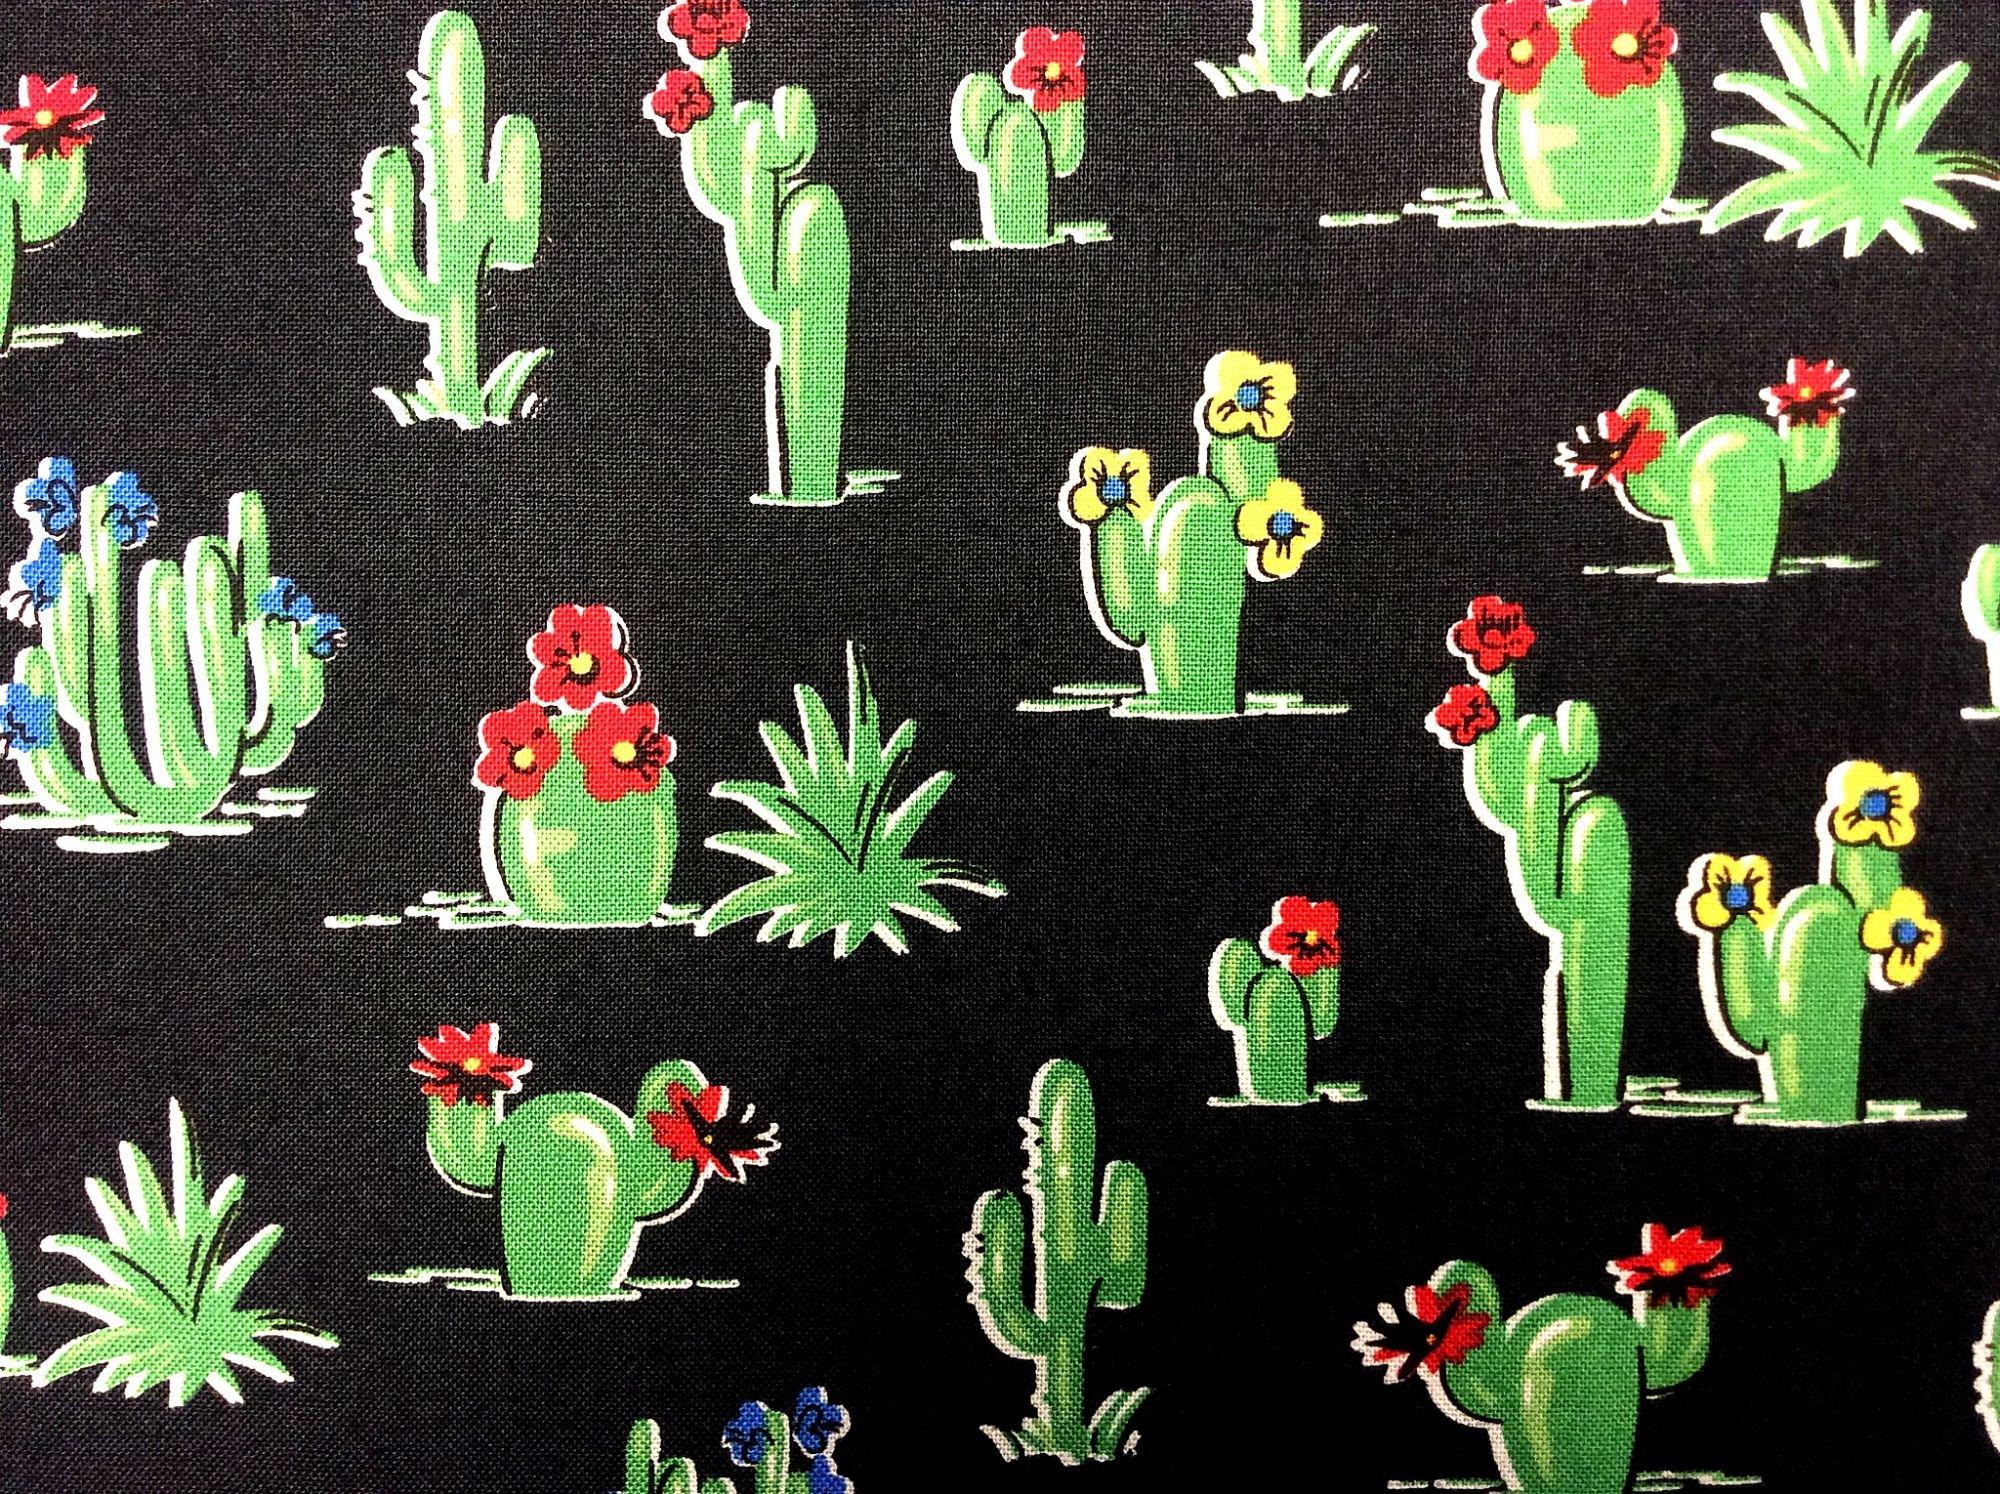 Cactus Mexico South of the Border Vintage Style Mexico Cotton Quilt Fabric WI108